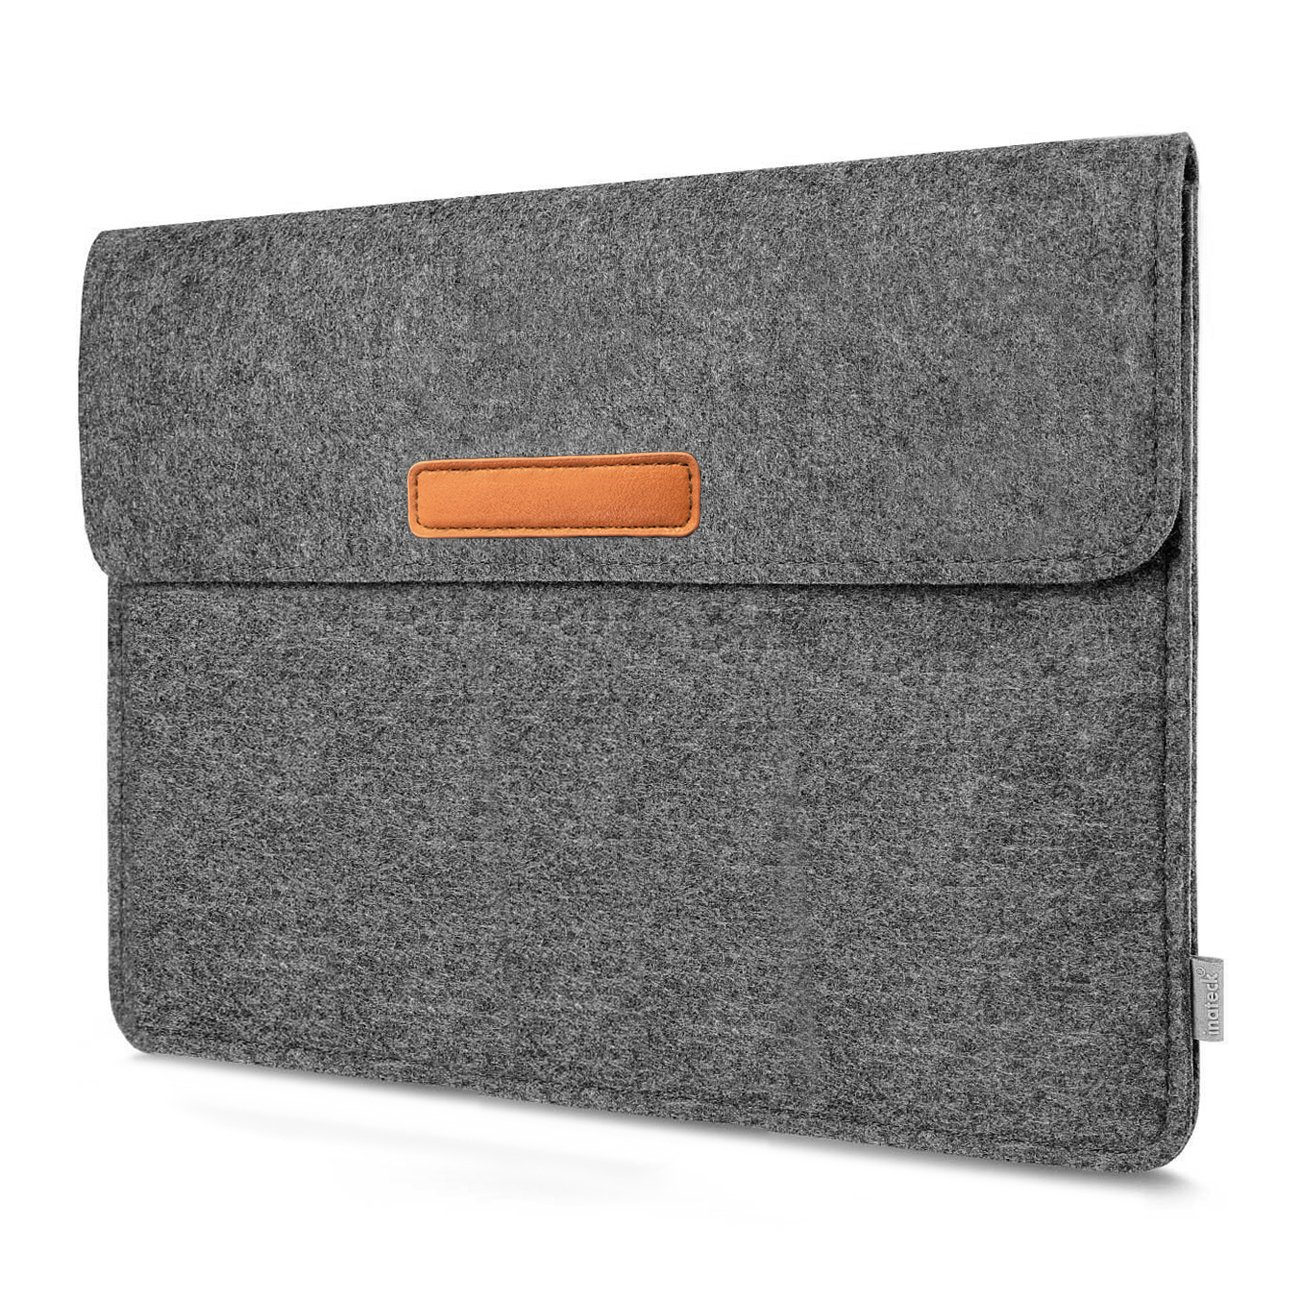 "Inateck 12.3-13 Inch Laptop Sleeve Case Compatible with 2020 MacBook Air, MacBook Pro 13"" 2020/2019/2018/2017/2016…"